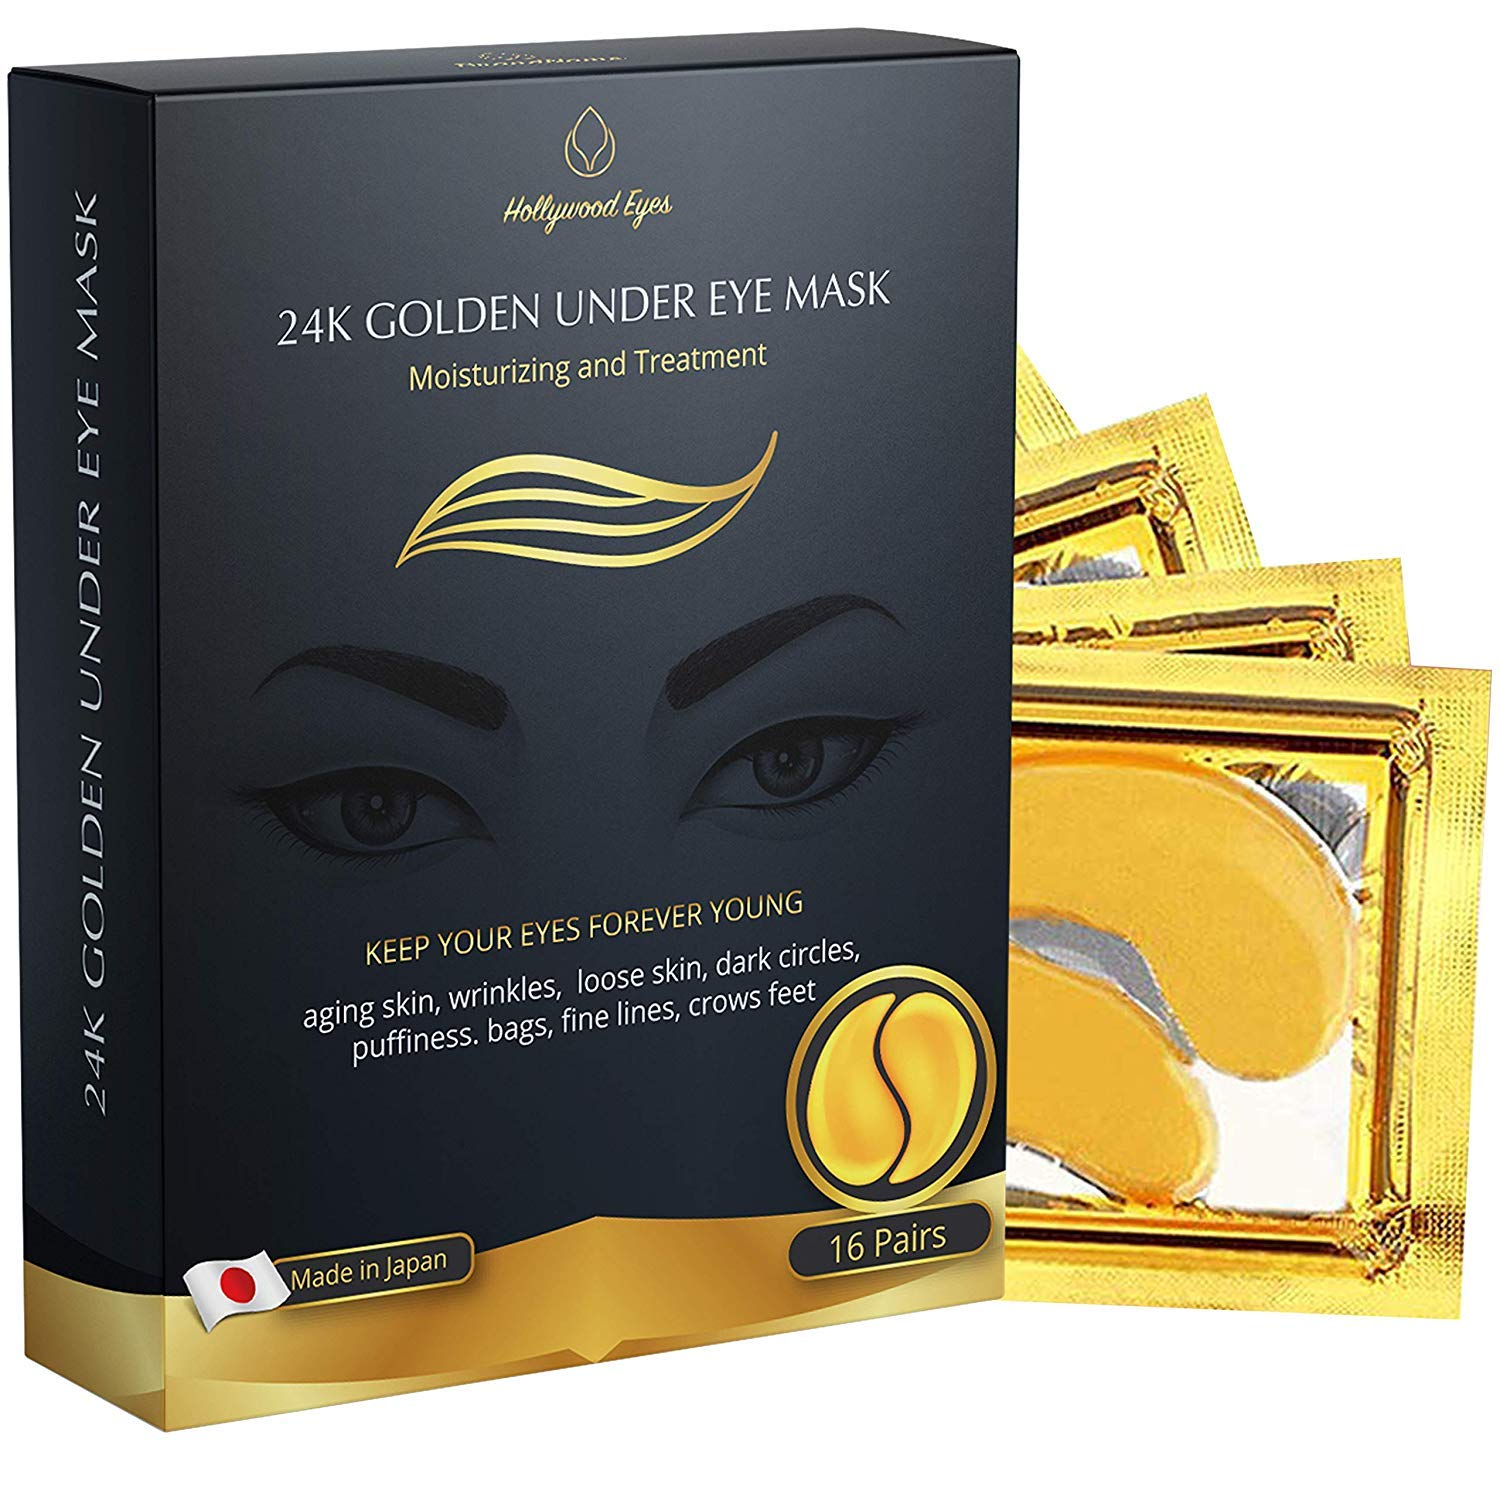 Under Eye Mask 24GoldPatches, Anti-Aging with Hyaluronic Acid and Collagen, Pads for Moisturizing and Reducing Dark Circles, Puffiness, Wrinkles, 16 pairs by Hollywood Eyes